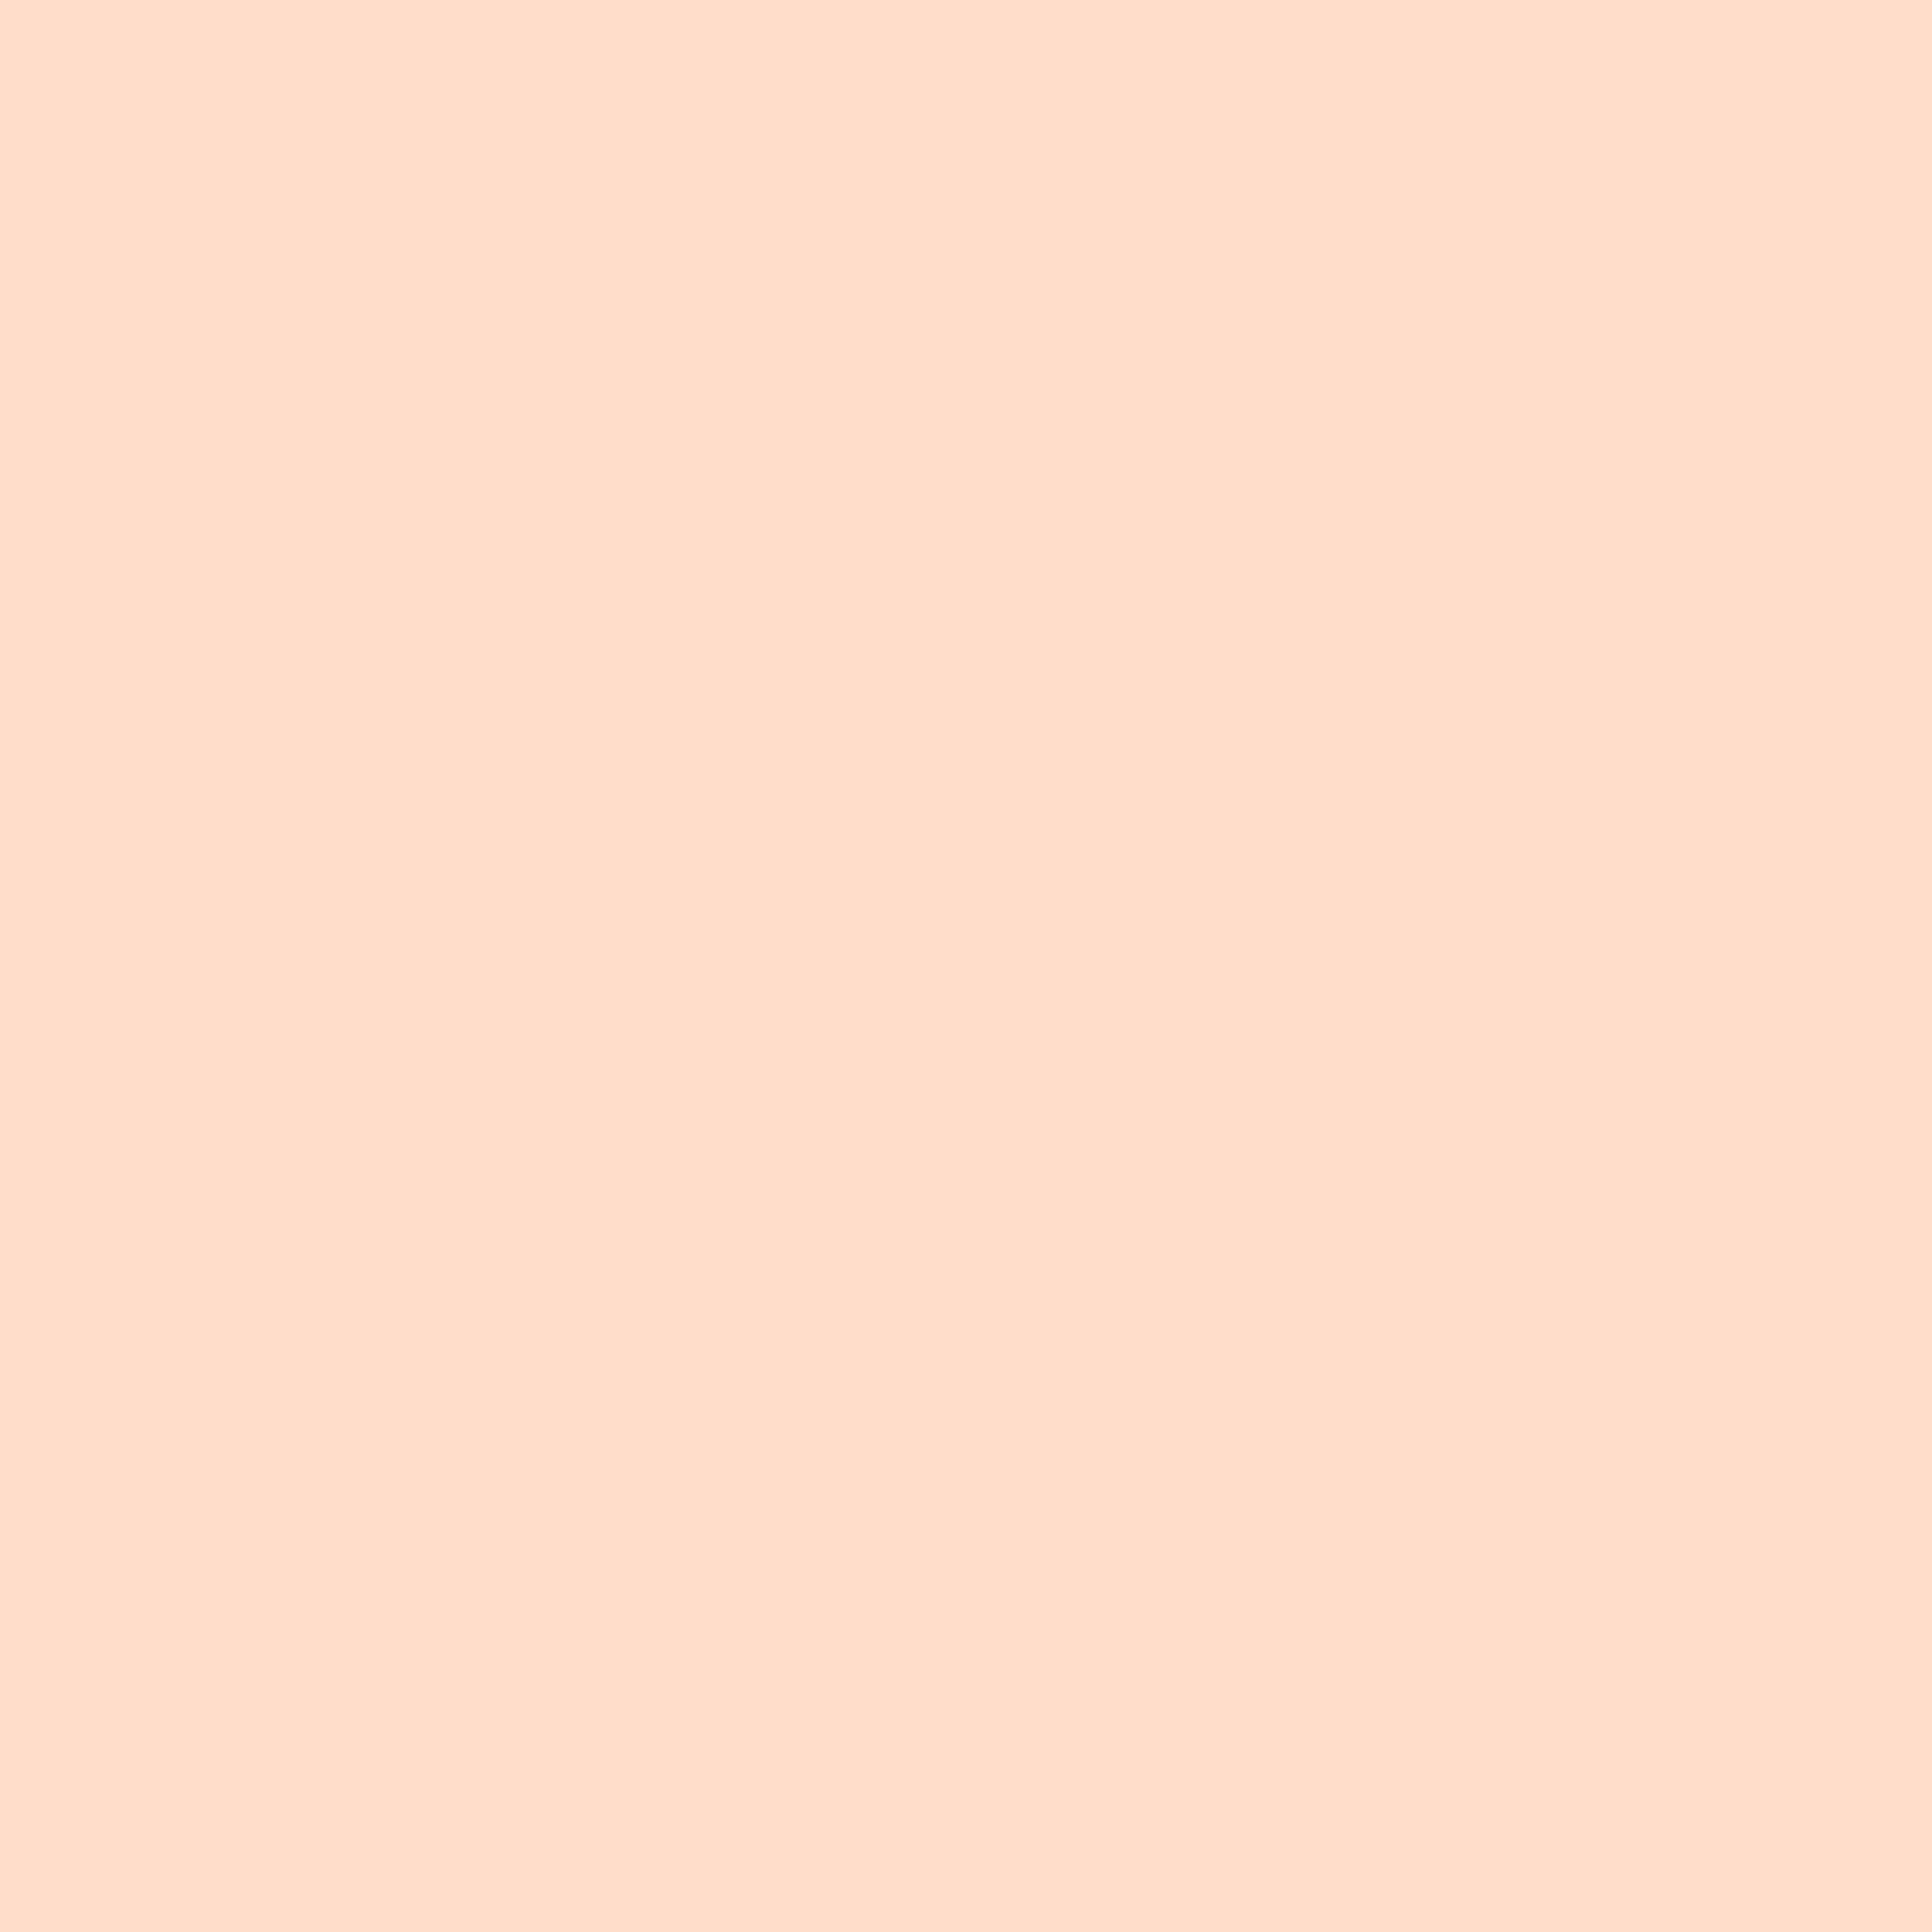 2732x2732 Unbleached Silk Solid Color Background